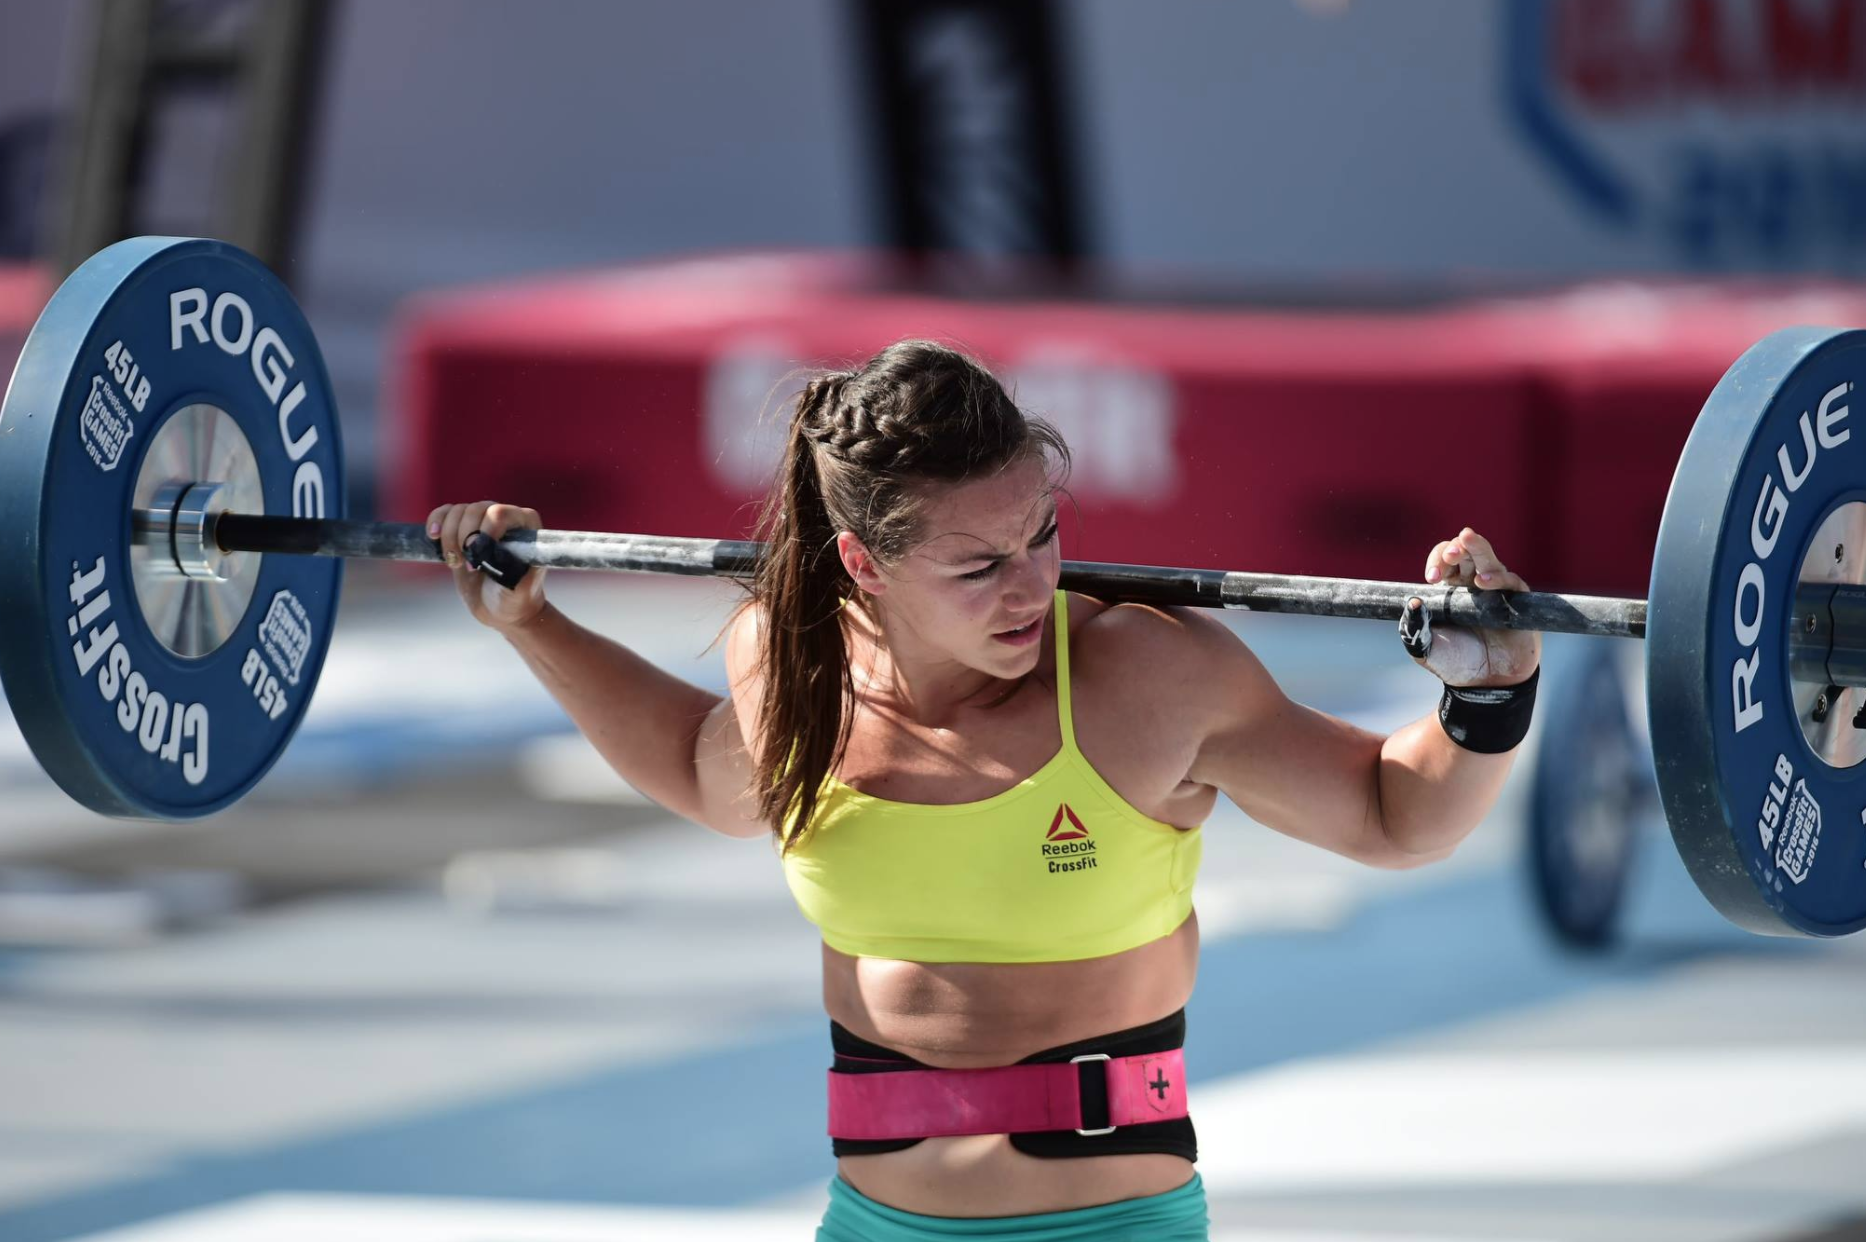 Camille Leblanc-Bazinet at the 2016 CrossFit Games - 200-400 f/4 - Copyright CrossFit Inc, 2016, all rights reserved